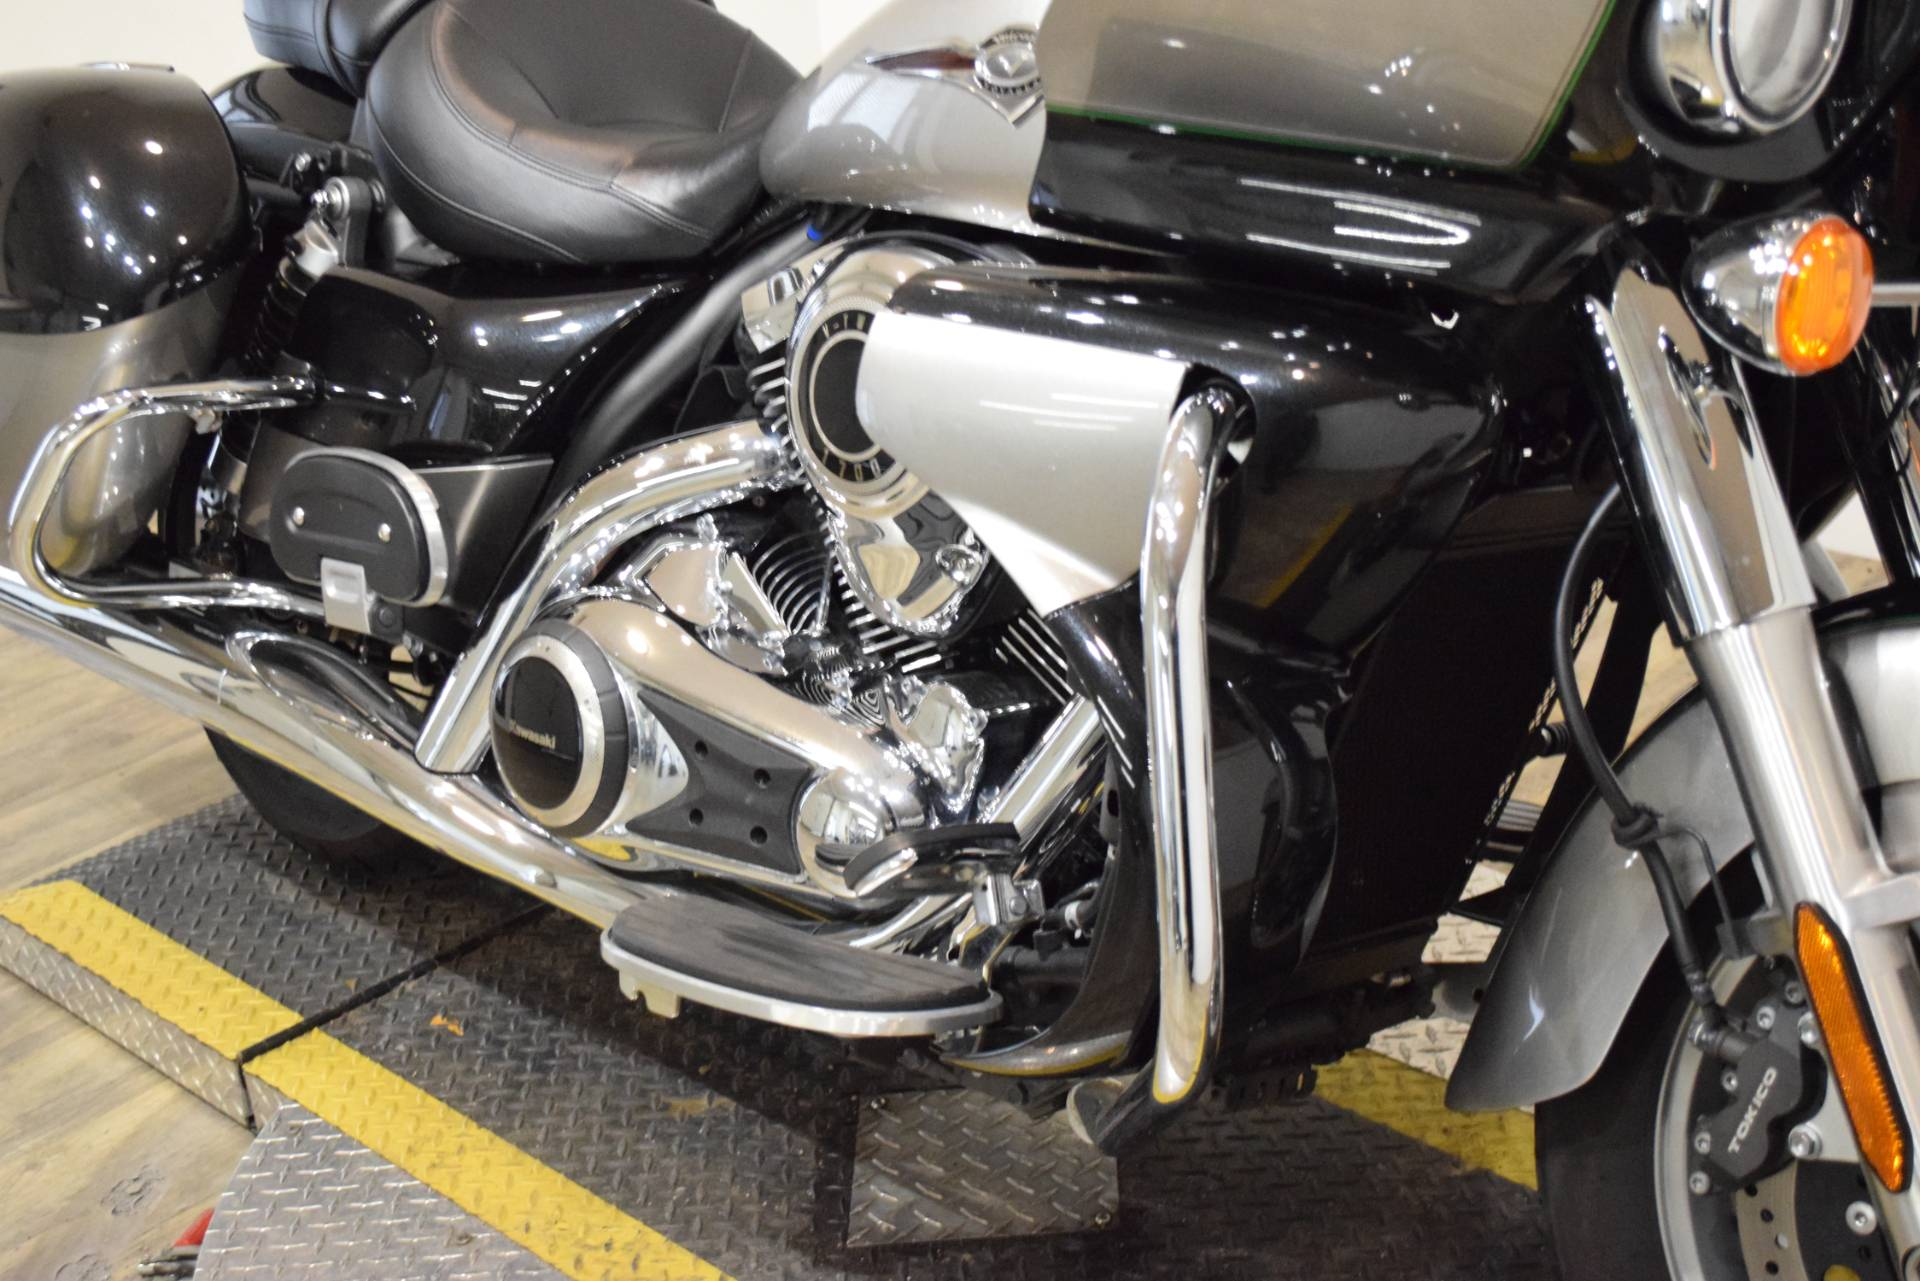 2016 Kawasaki Vulcan 1700 Voyager ABS in Wauconda, Illinois - Photo 4